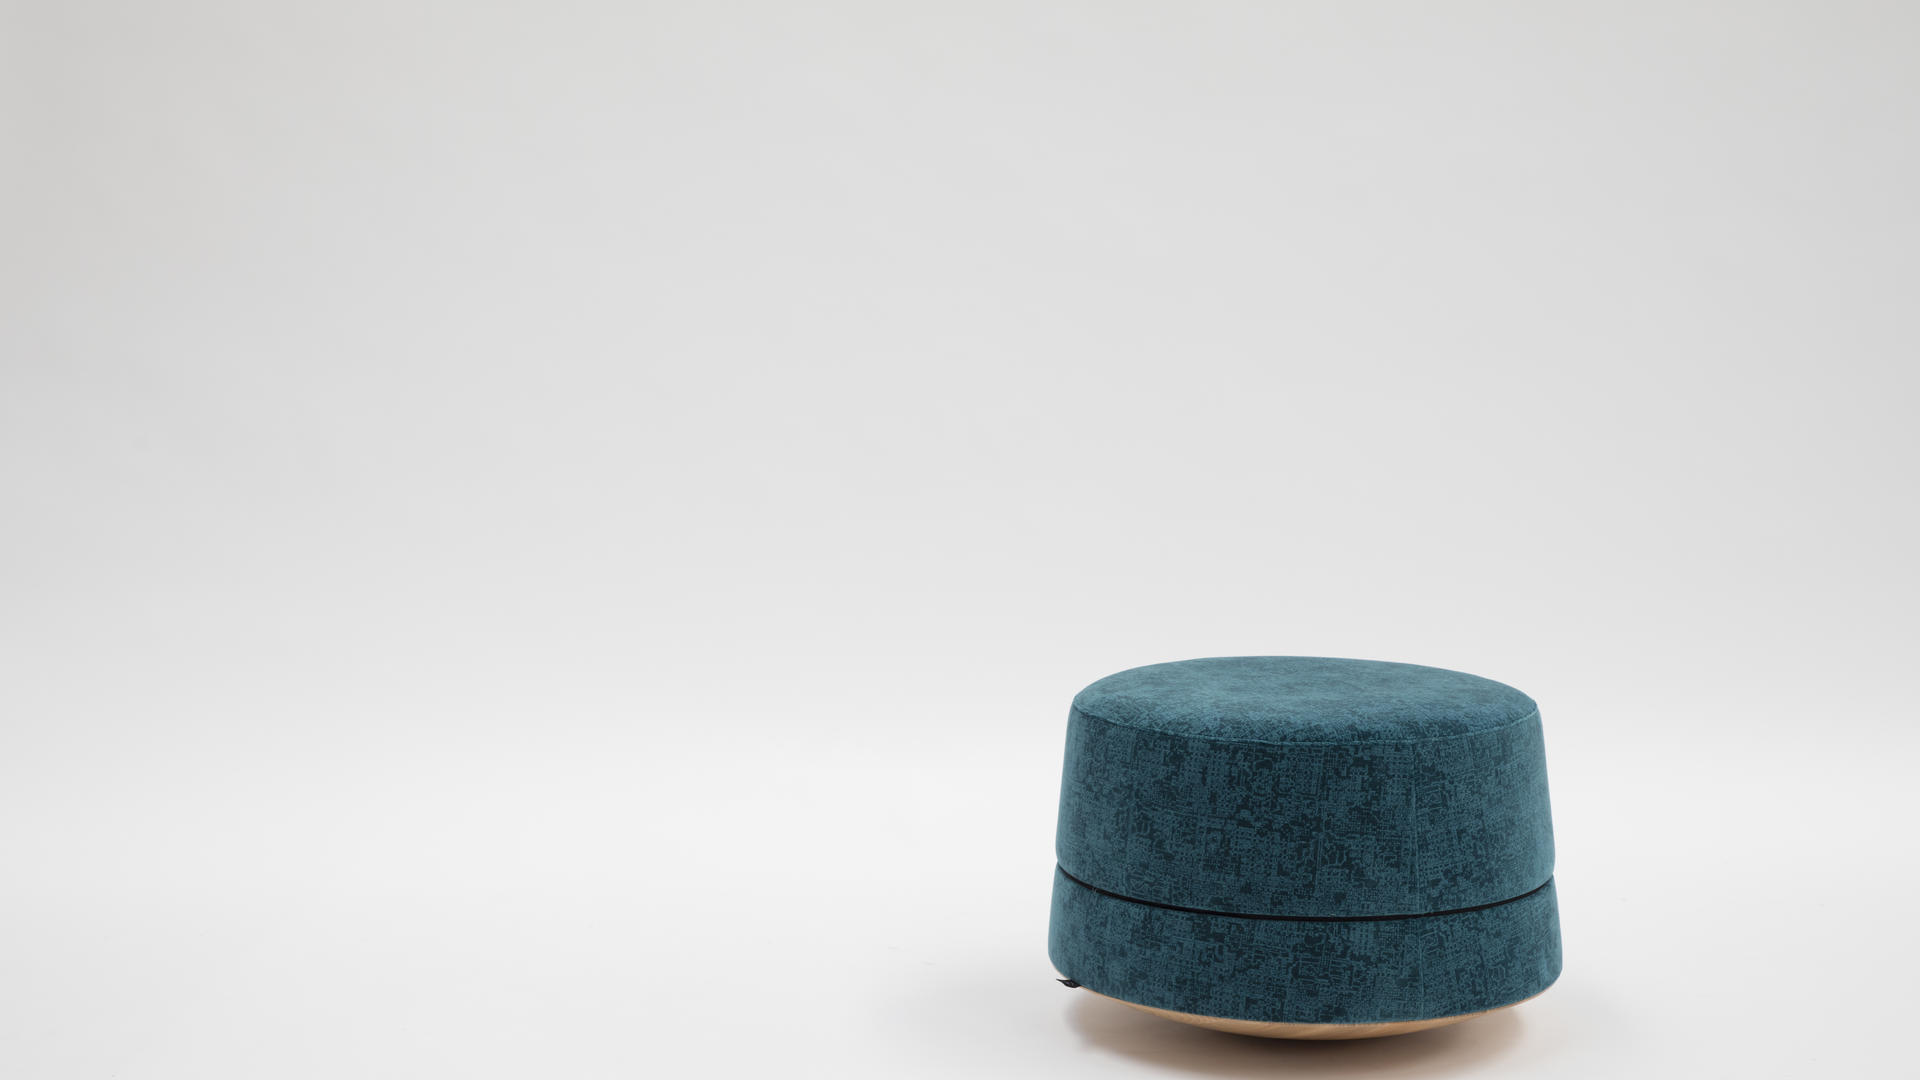 CAT F - Kvadrat Matrix